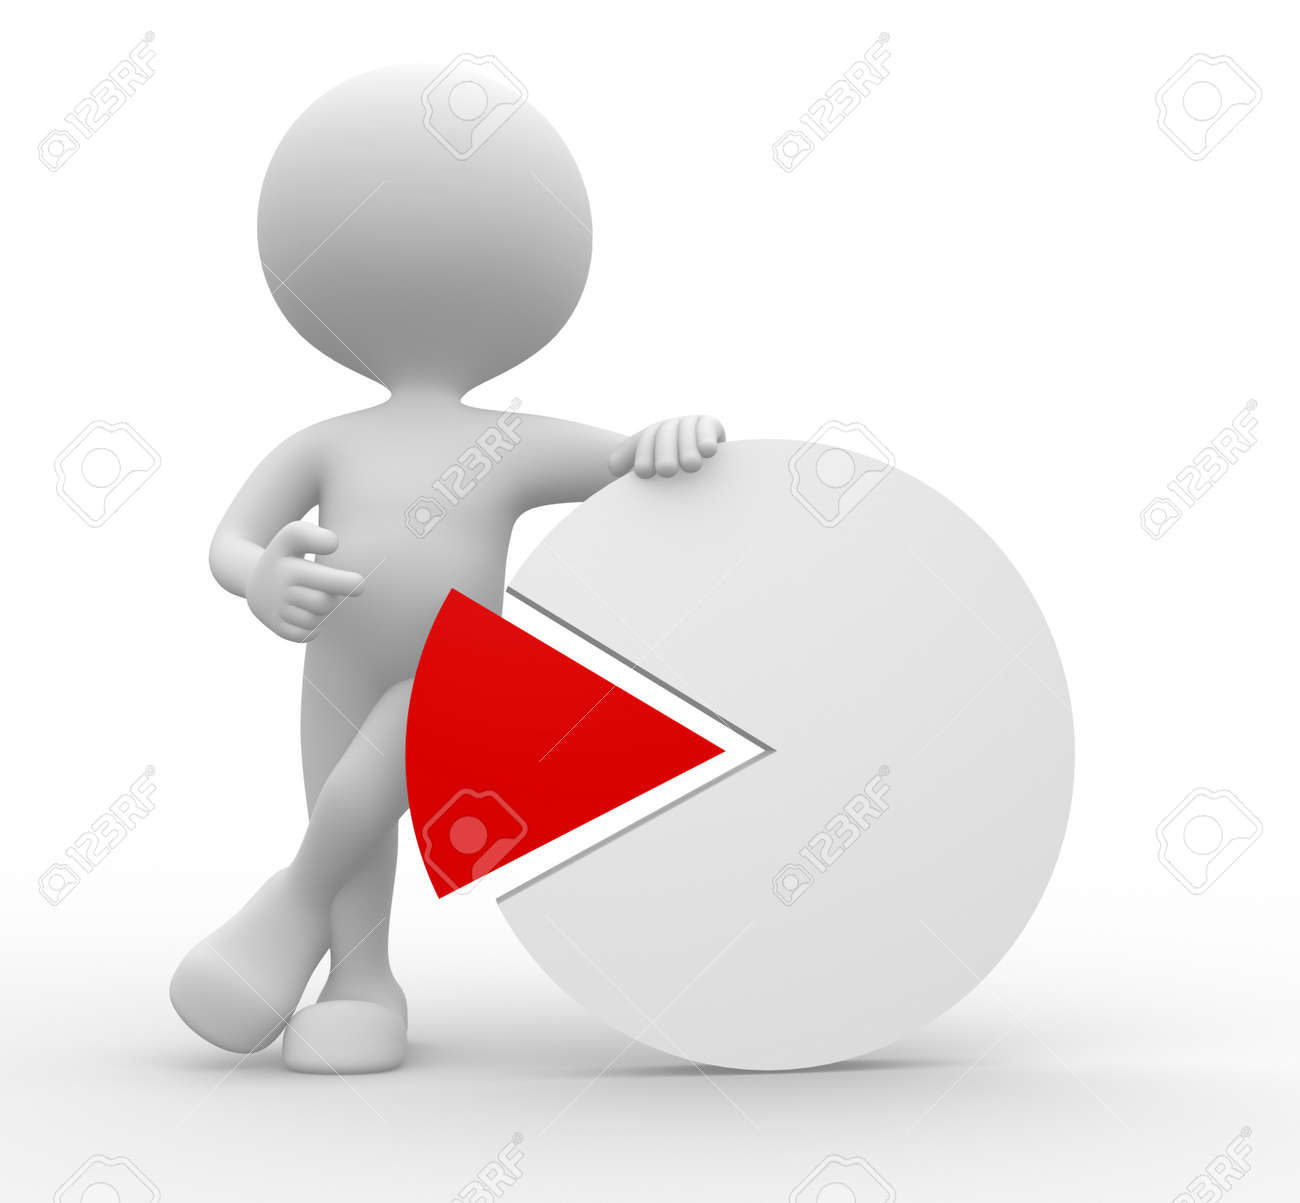 3d people - man, person with pie chat Stock Photo - 21138620